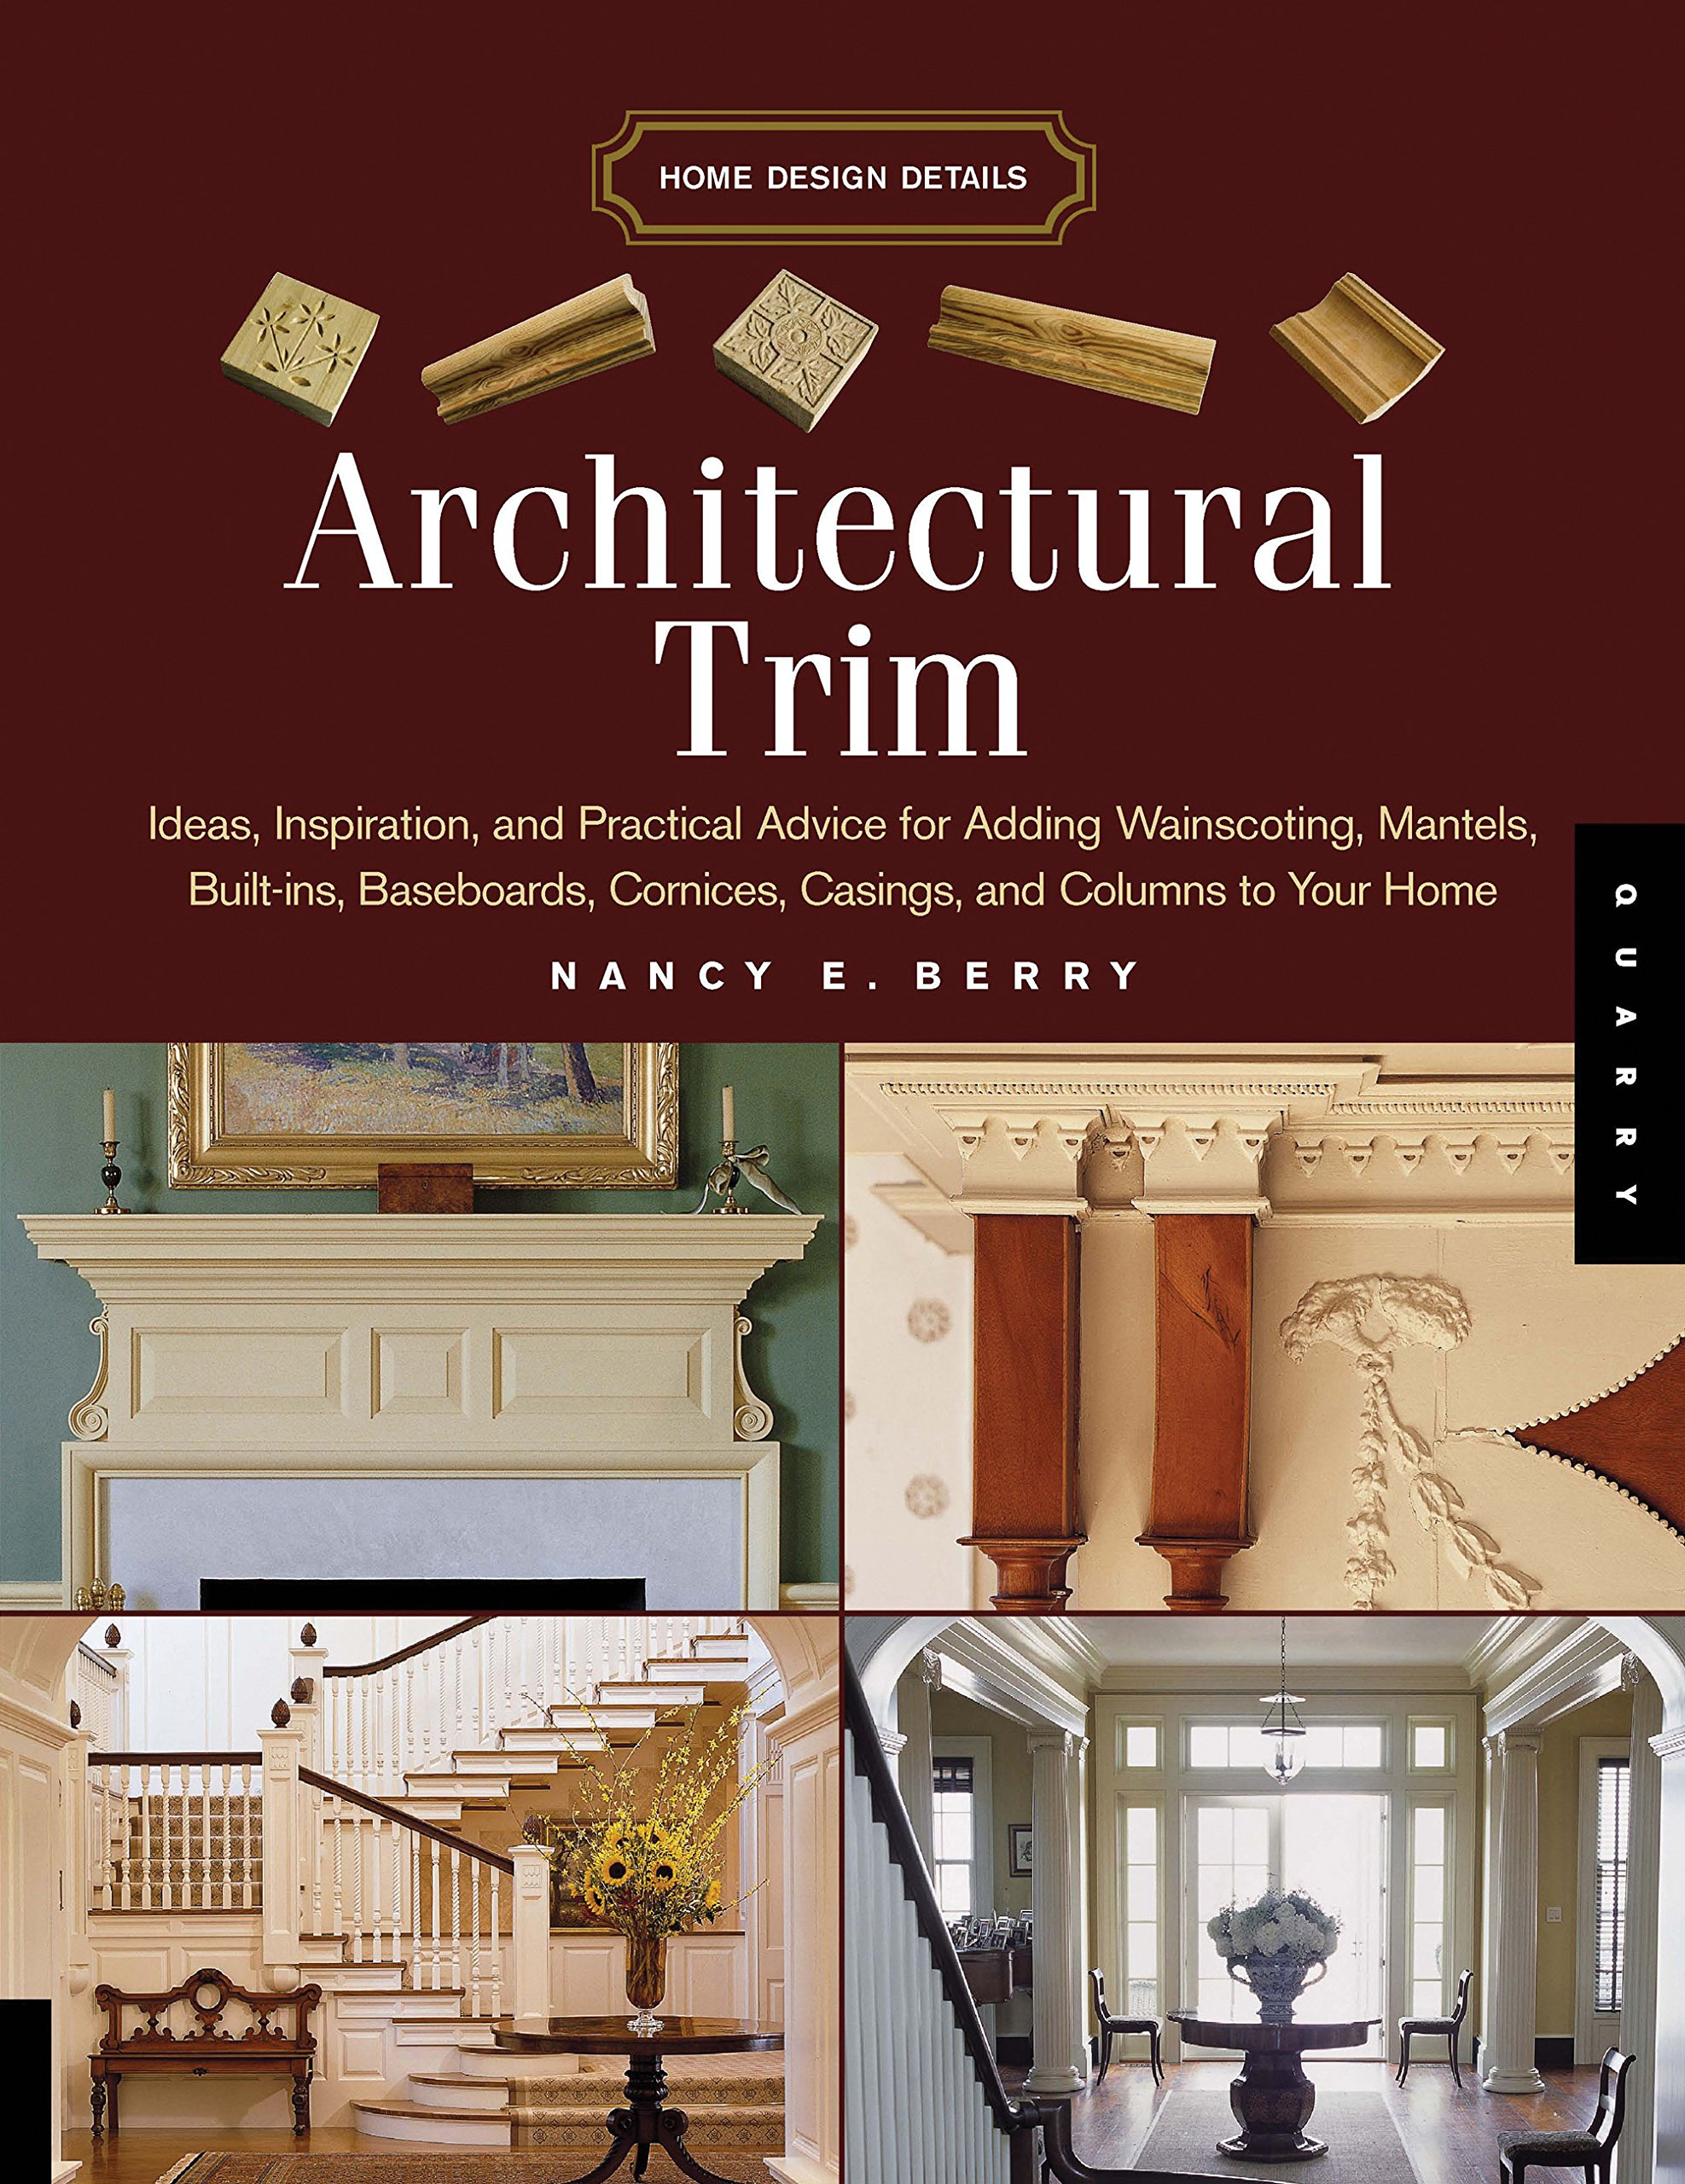 Architectural Trim: Ideas, Inspiration and Practical Advice for Adding Wainscoting, Mantels, Built-Ins, Baseboards, Cornices, Castings and Columns to your Home (Home Design Details)